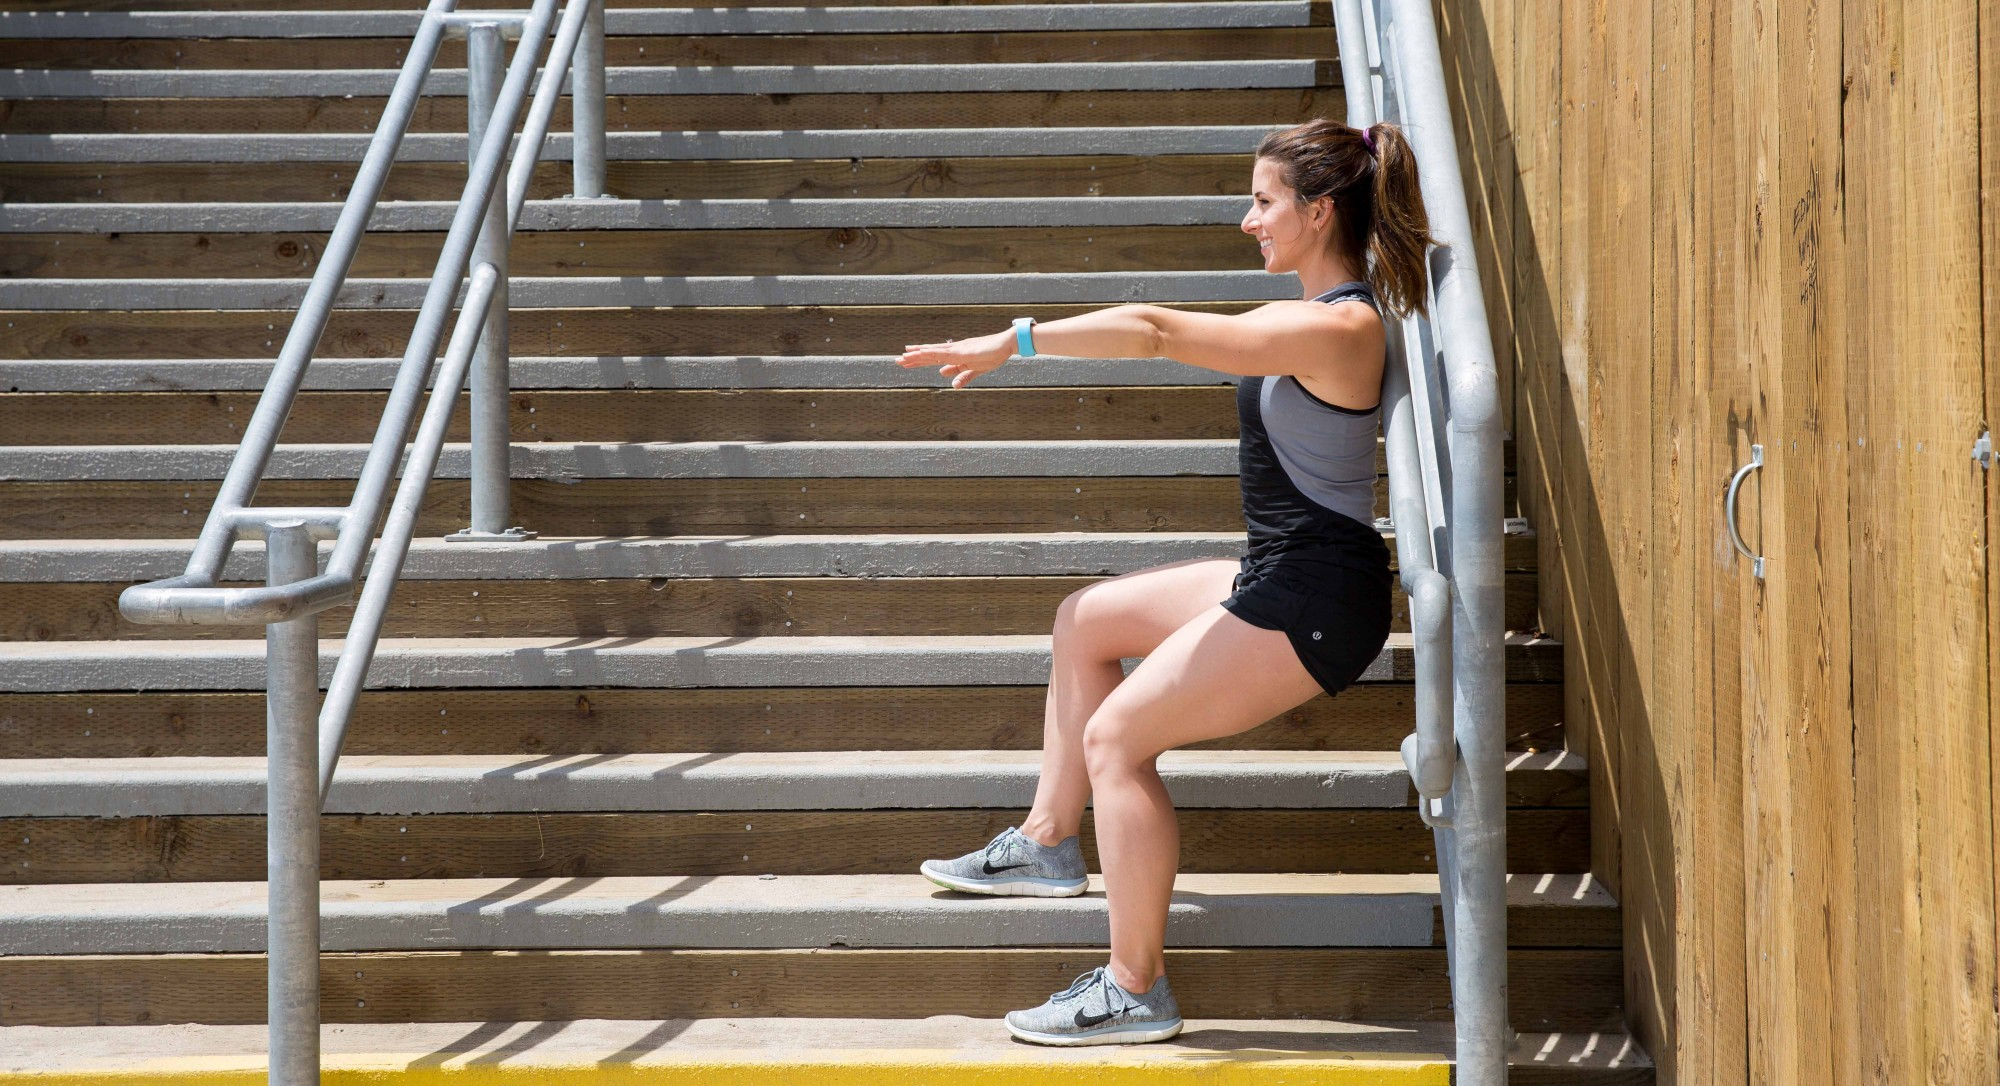 The 10-Minute Workout That Will Get Your Body Ready for Summer